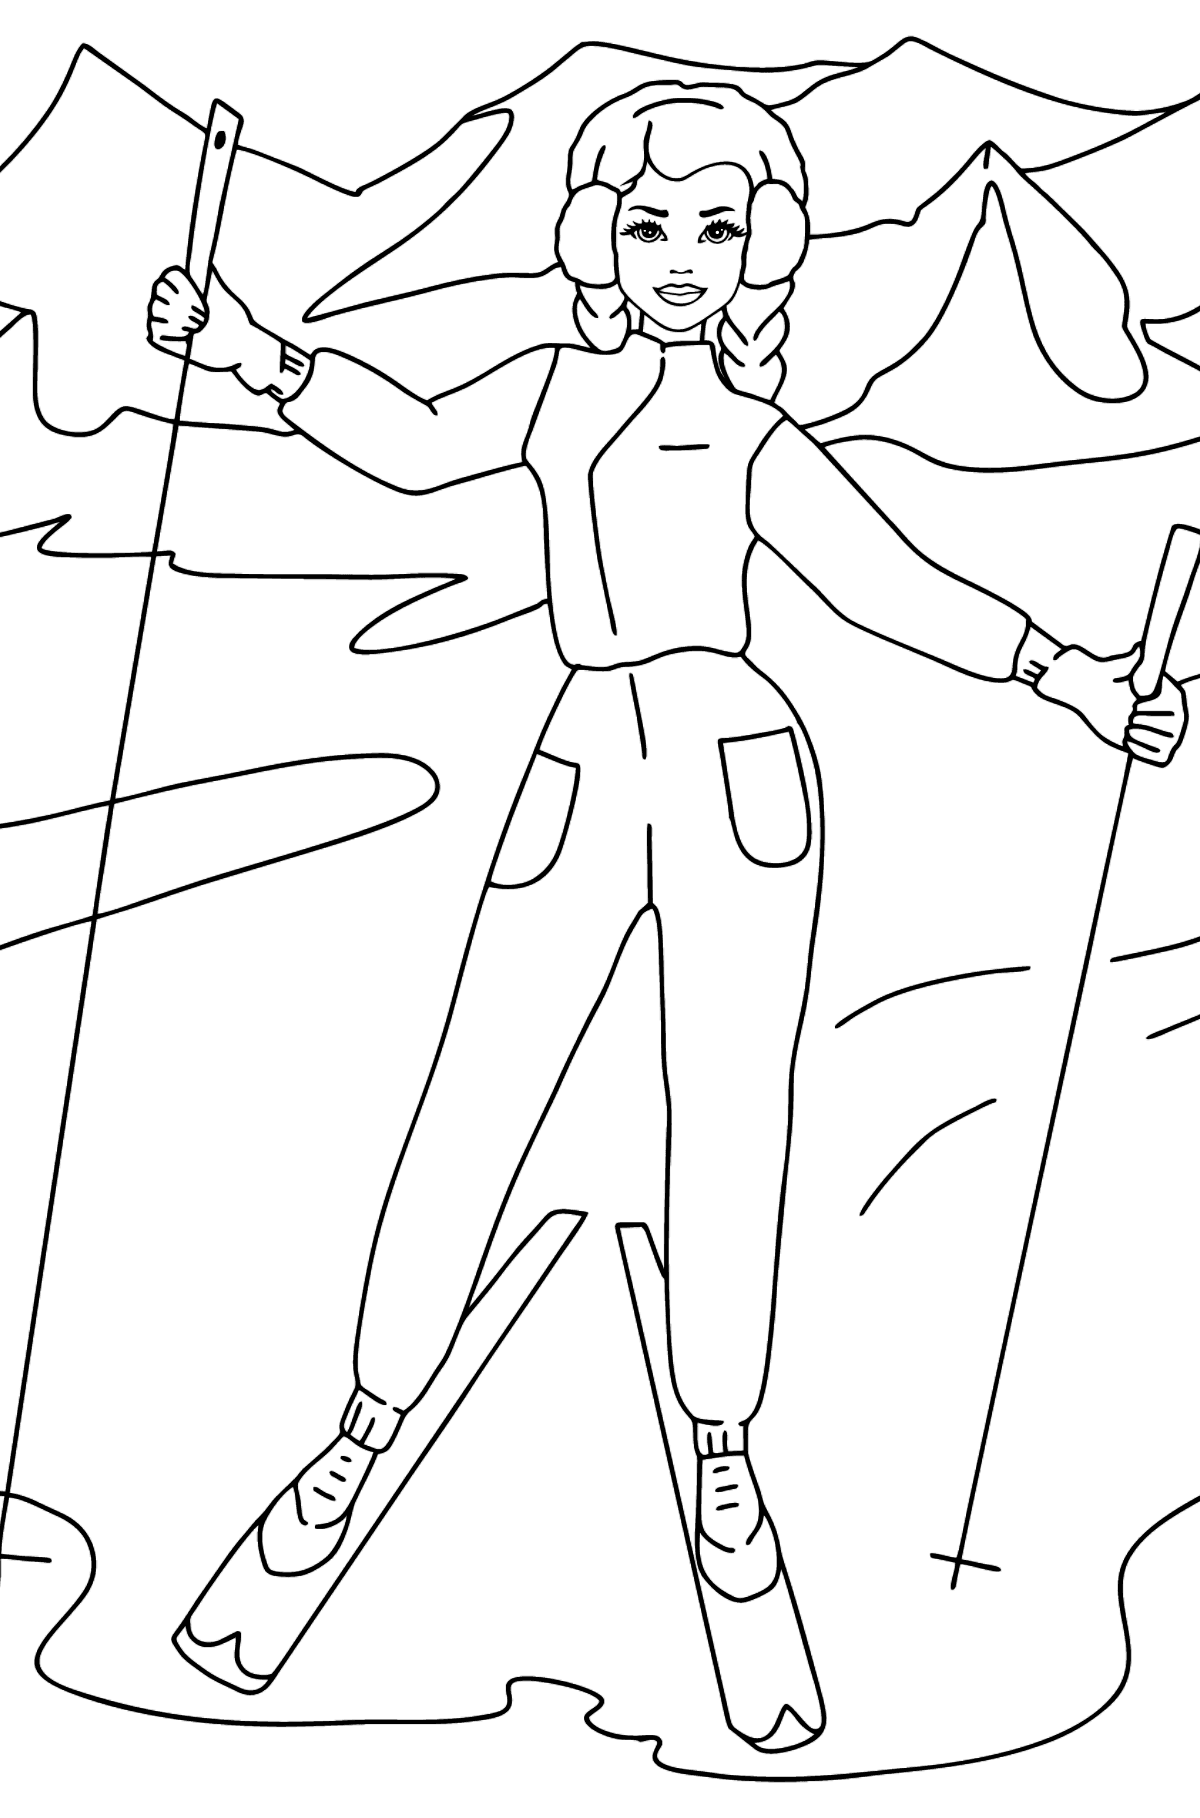 Barbie Doll in a Ski Resort coloring page - Coloring Pages for Kids